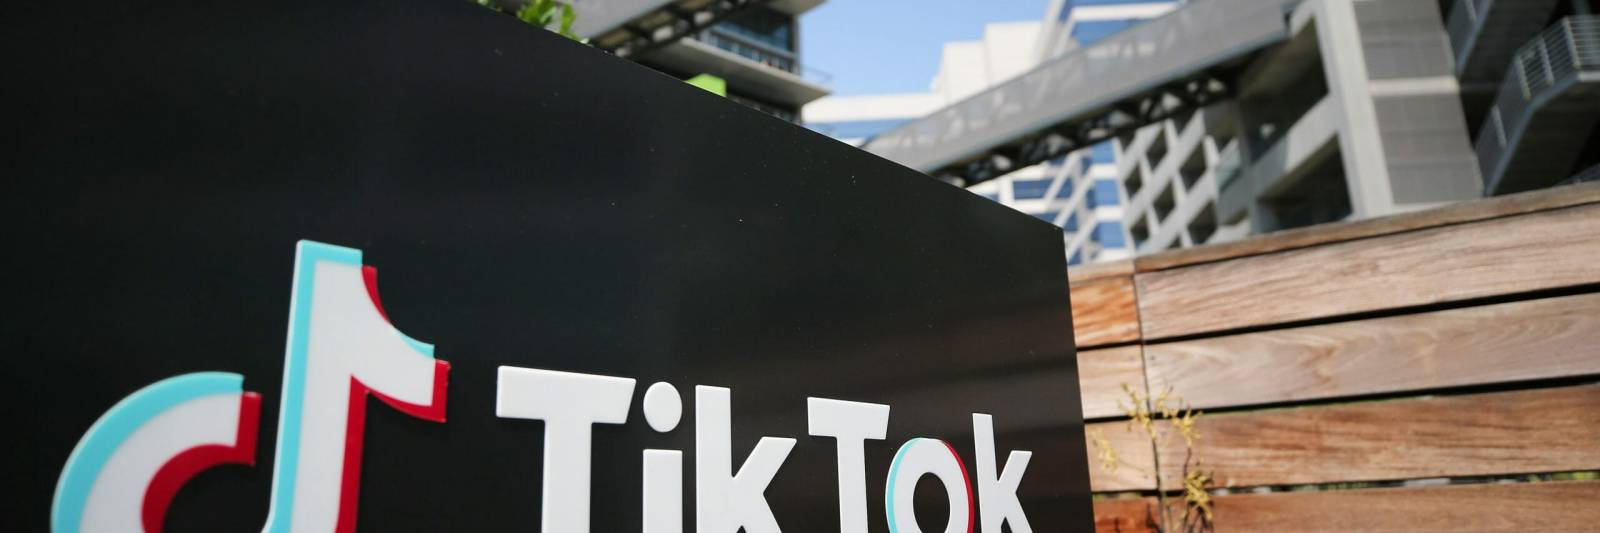 managing security in the spotlight: tiktok's cso roland cloutier to